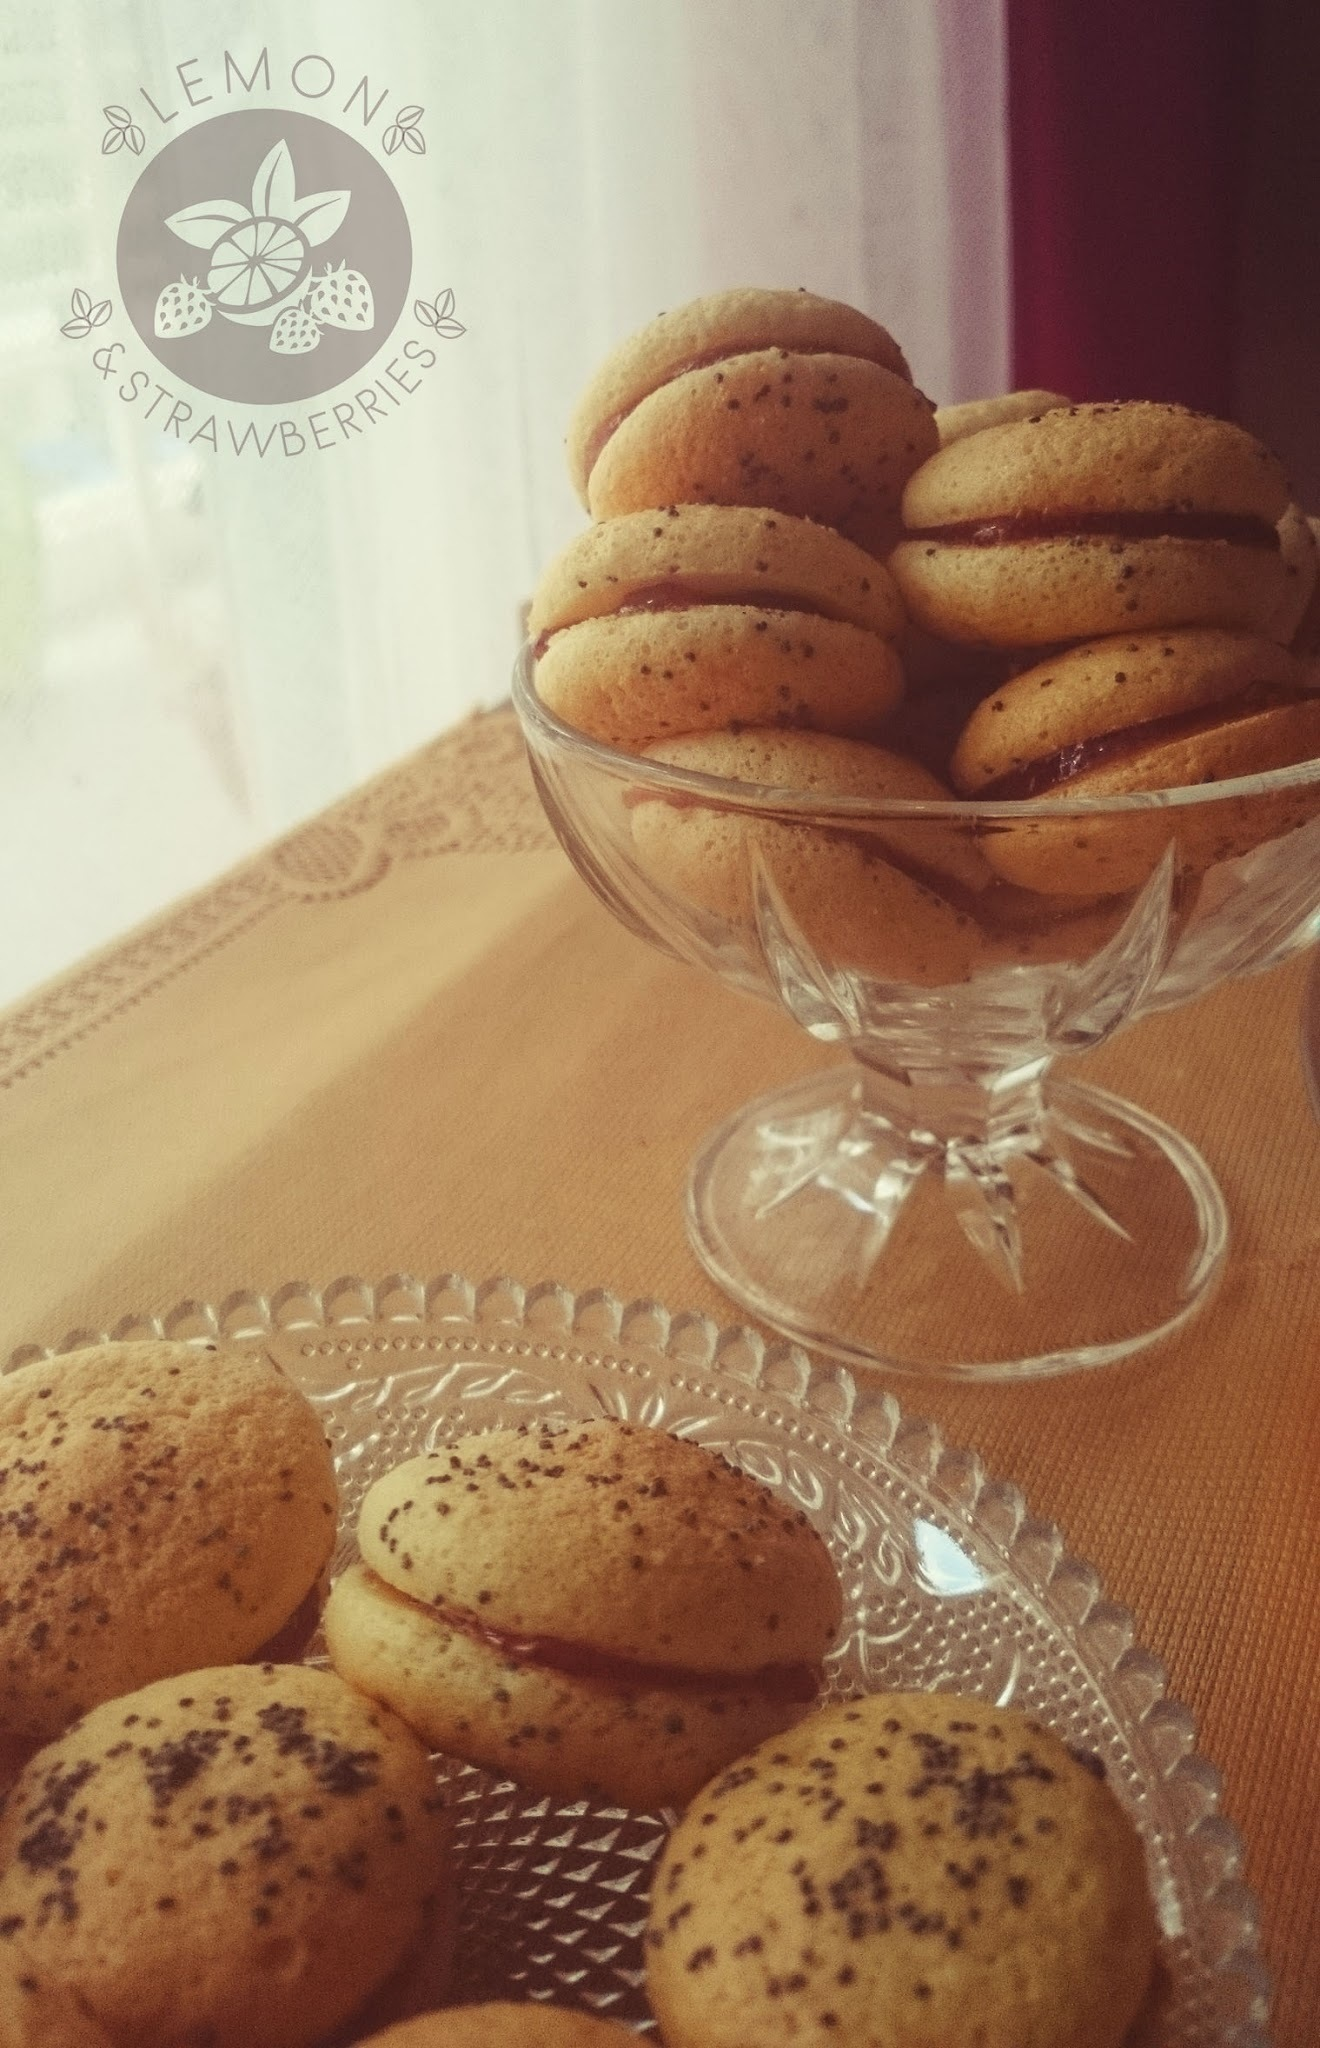 Baletki (Polish) - fluffy biscuits with marmalade and poppy seeds